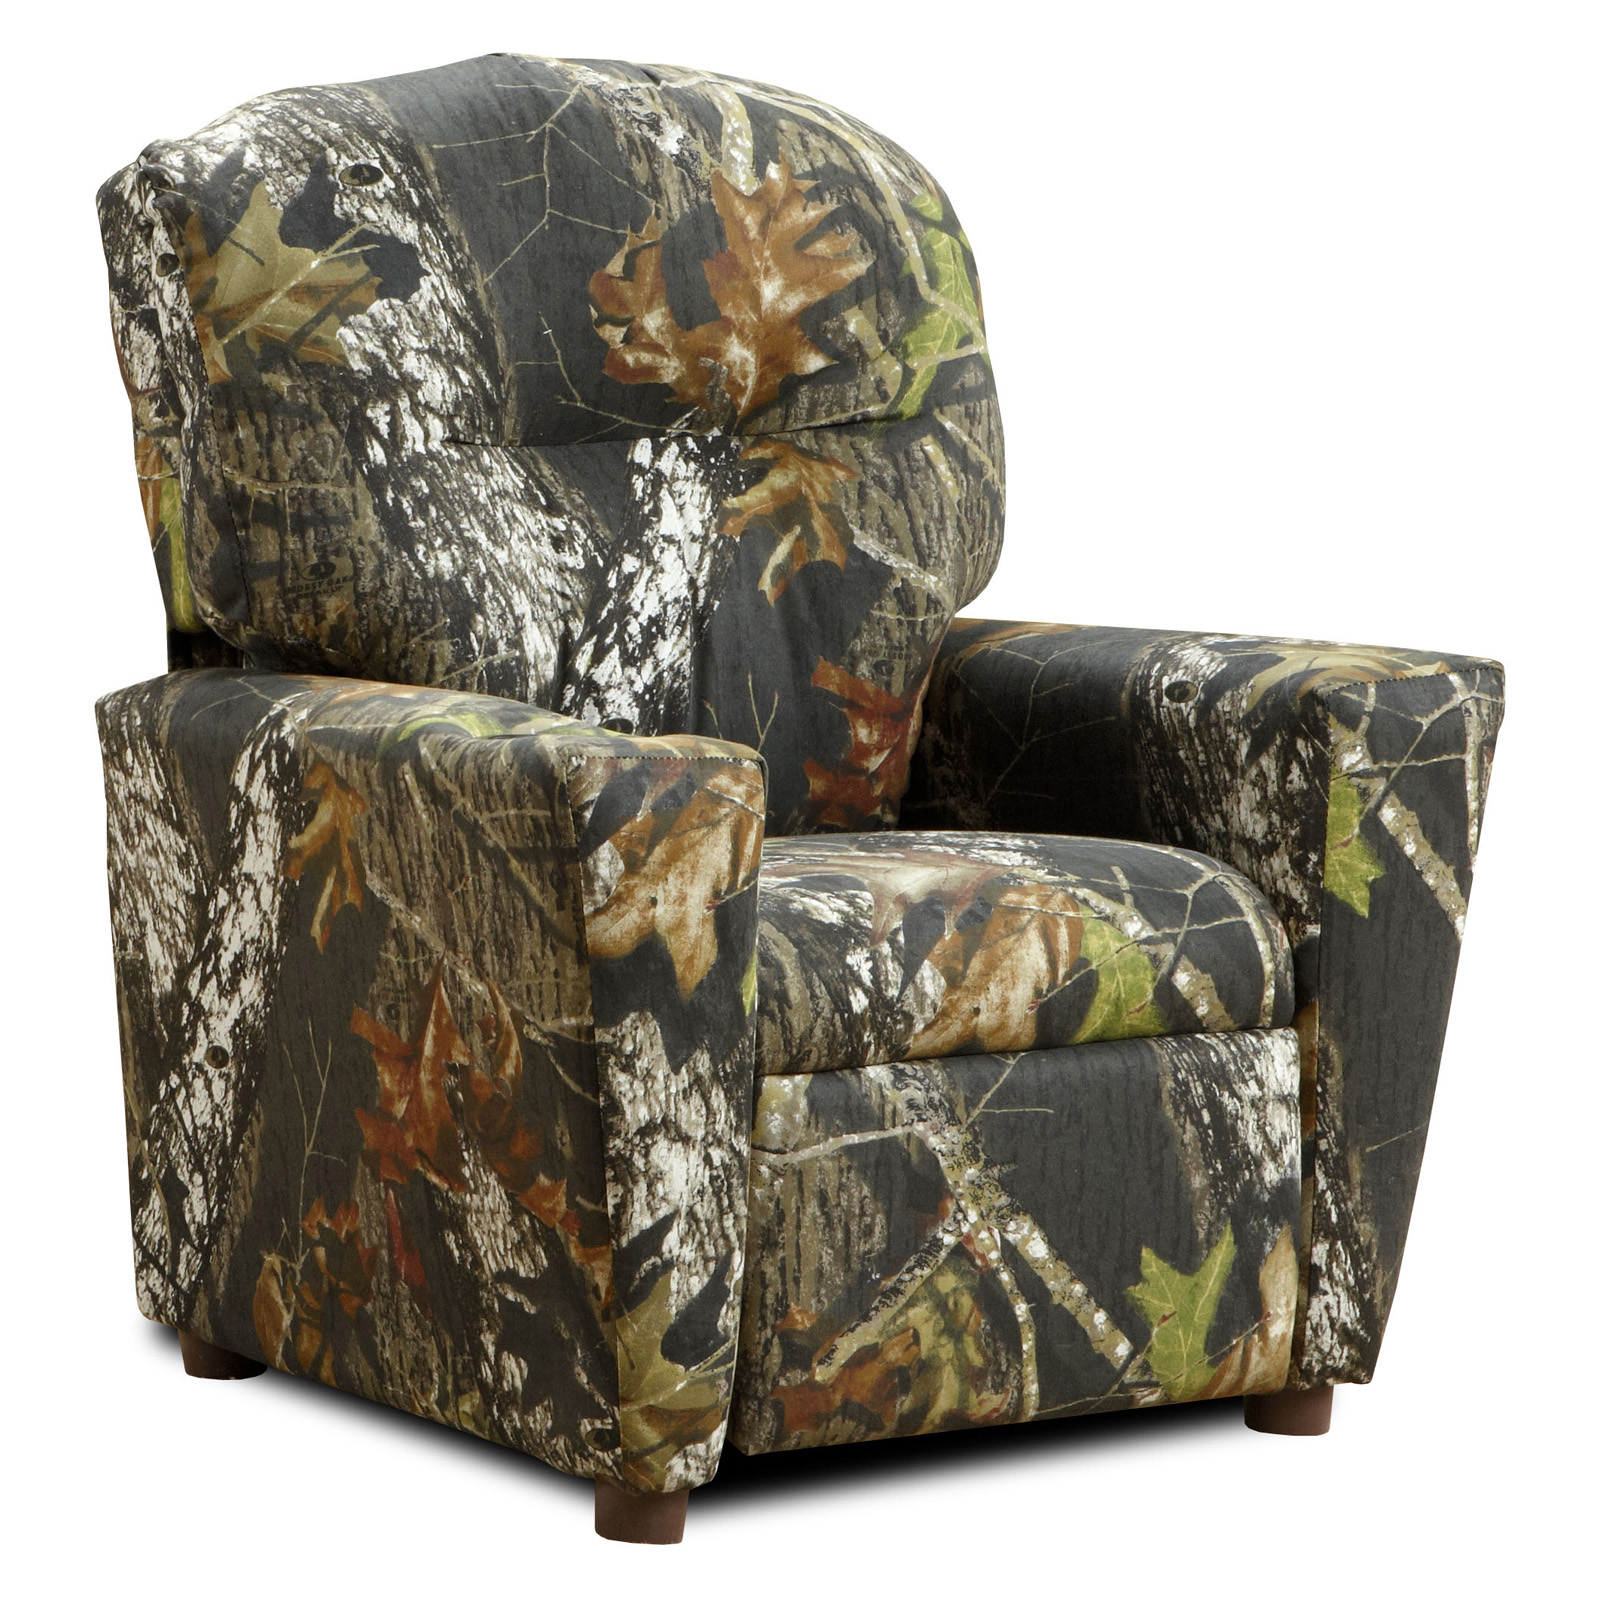 Kidz world mossy oak camouflage kid 39 s recliner at hayneedle for Camo chaise lounge